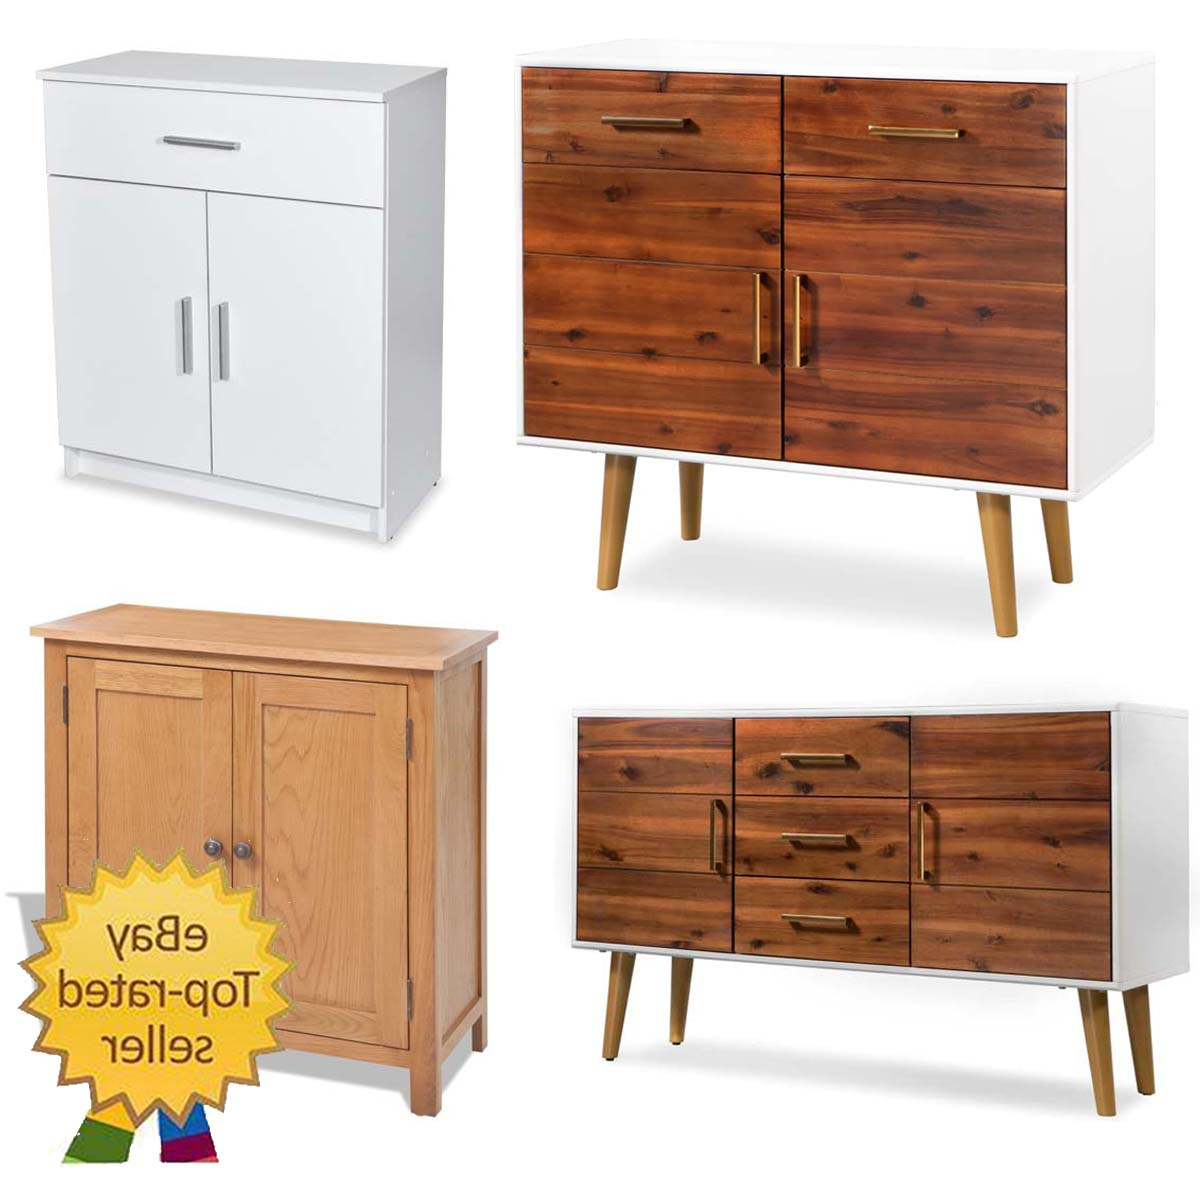 """Solid Acacia Wood Sideboard Cupboard Home 2 Doors 3 Inside Recent Fahey 58"""" Wide 3 Drawer Acacia Wood Sideboards (View 20 of 20)"""